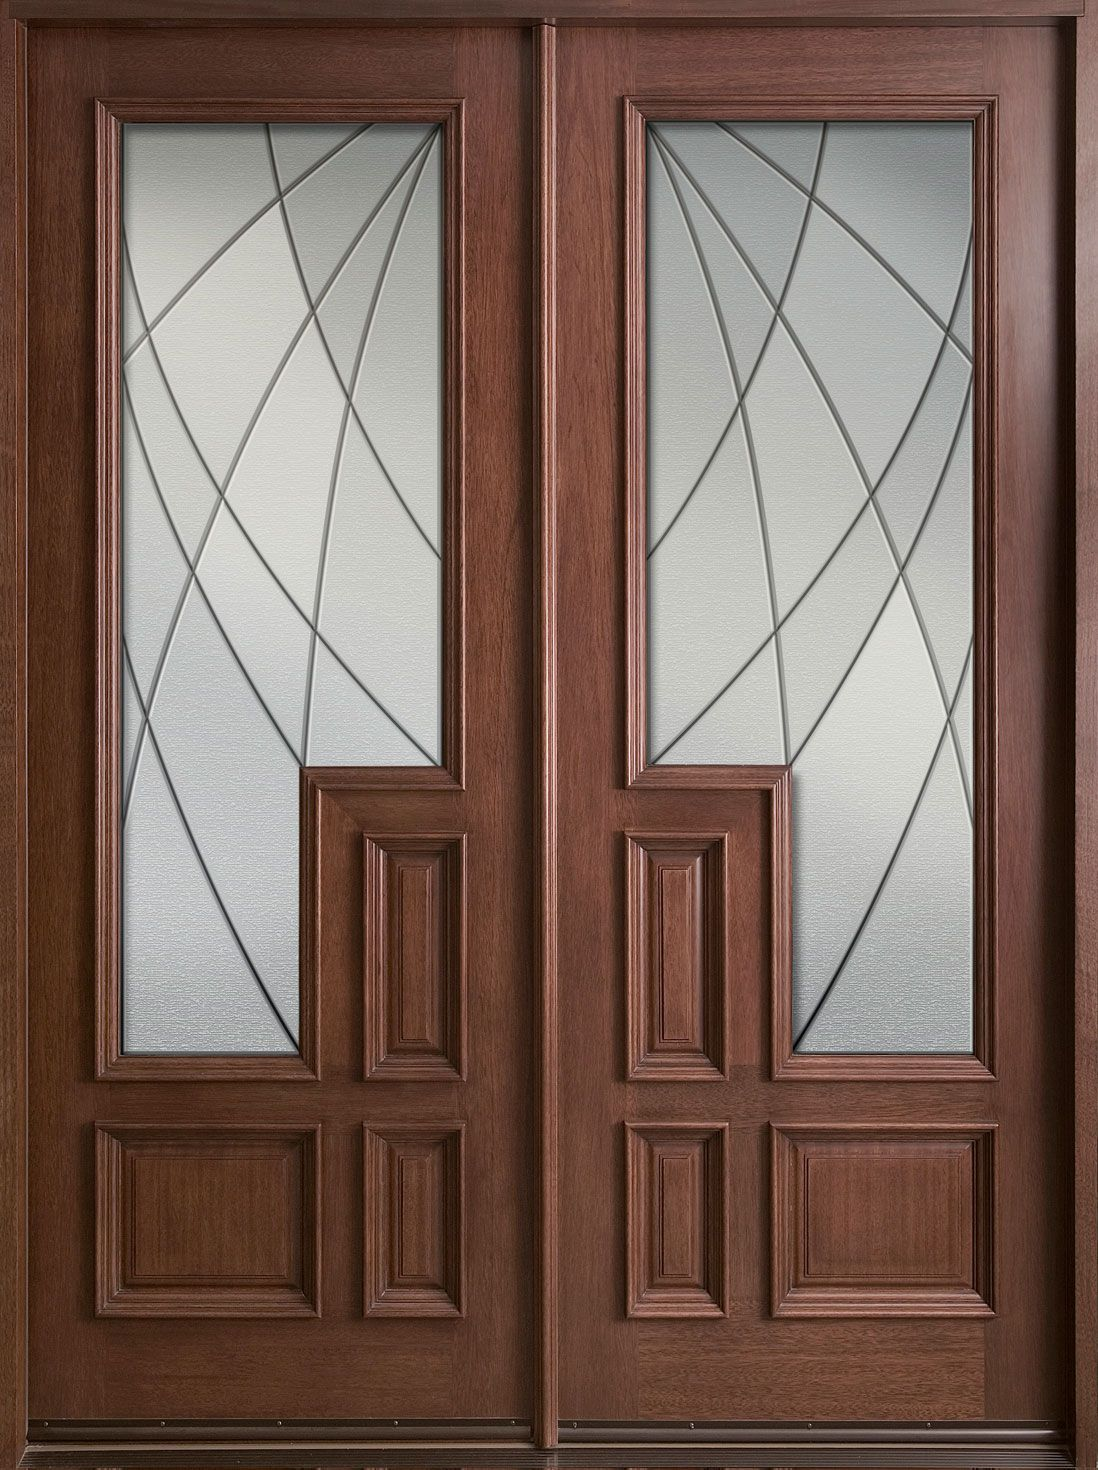 Inspiring double fiberglass entry door as furniture for for Solid wood front doors